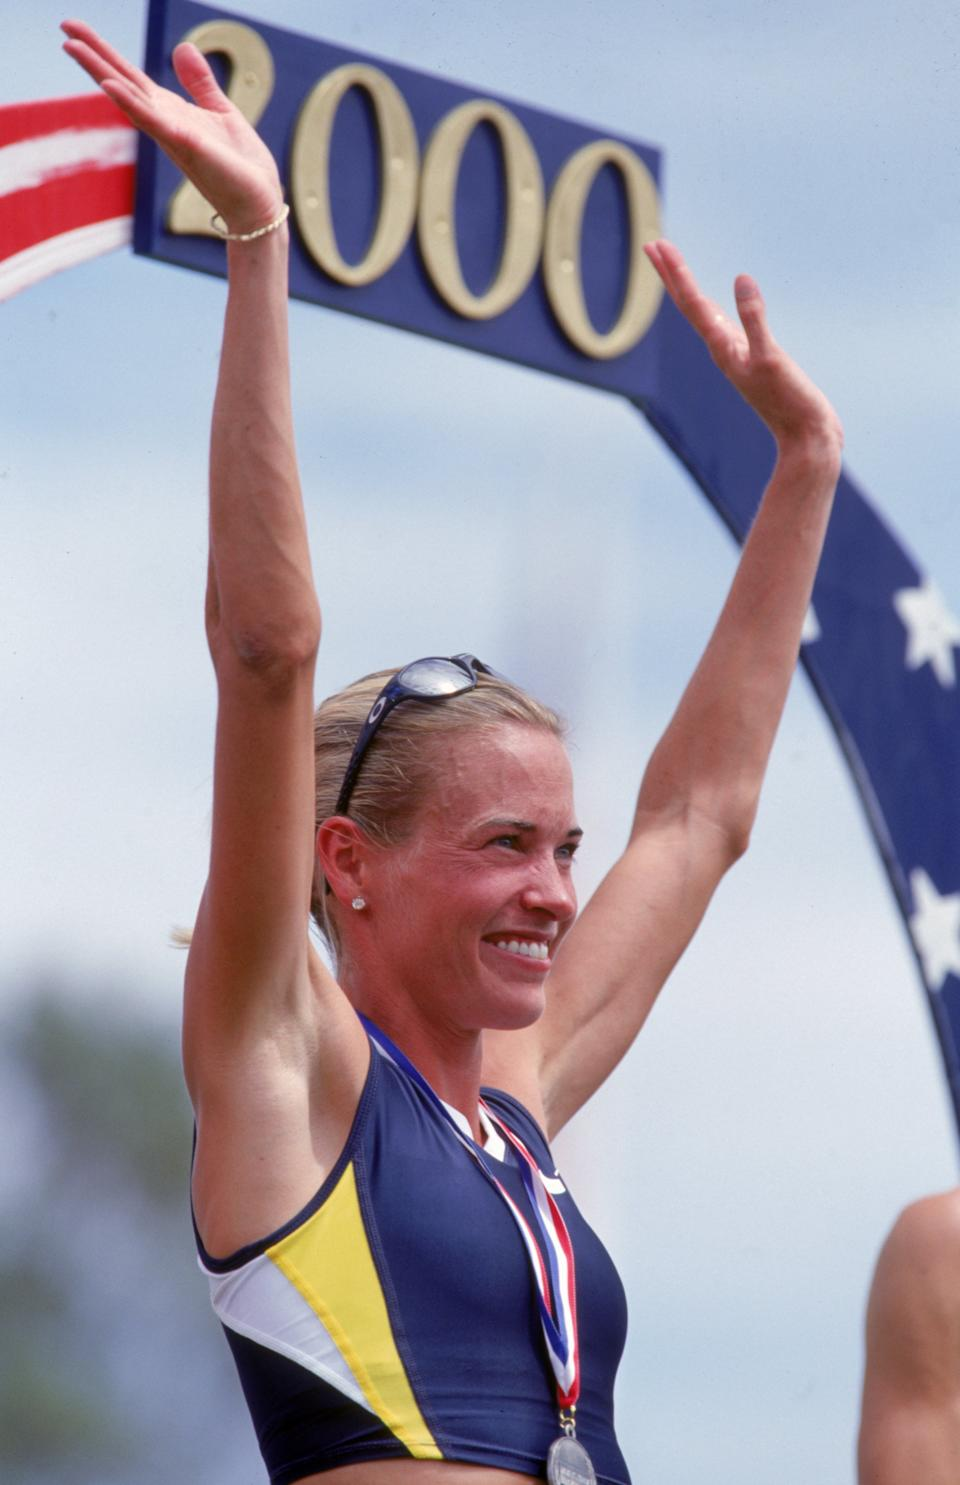 16 Jul 2000: Suzy Favor Hamilton of the USA celebrates on the winners podium after the Women's 1,500 meter event of the 2000 U.S. Olympic Track & Field Team Trials at the Hornet Stadium in Sacramento, California.Mandatory Credit: Andy Lyons /Allsport